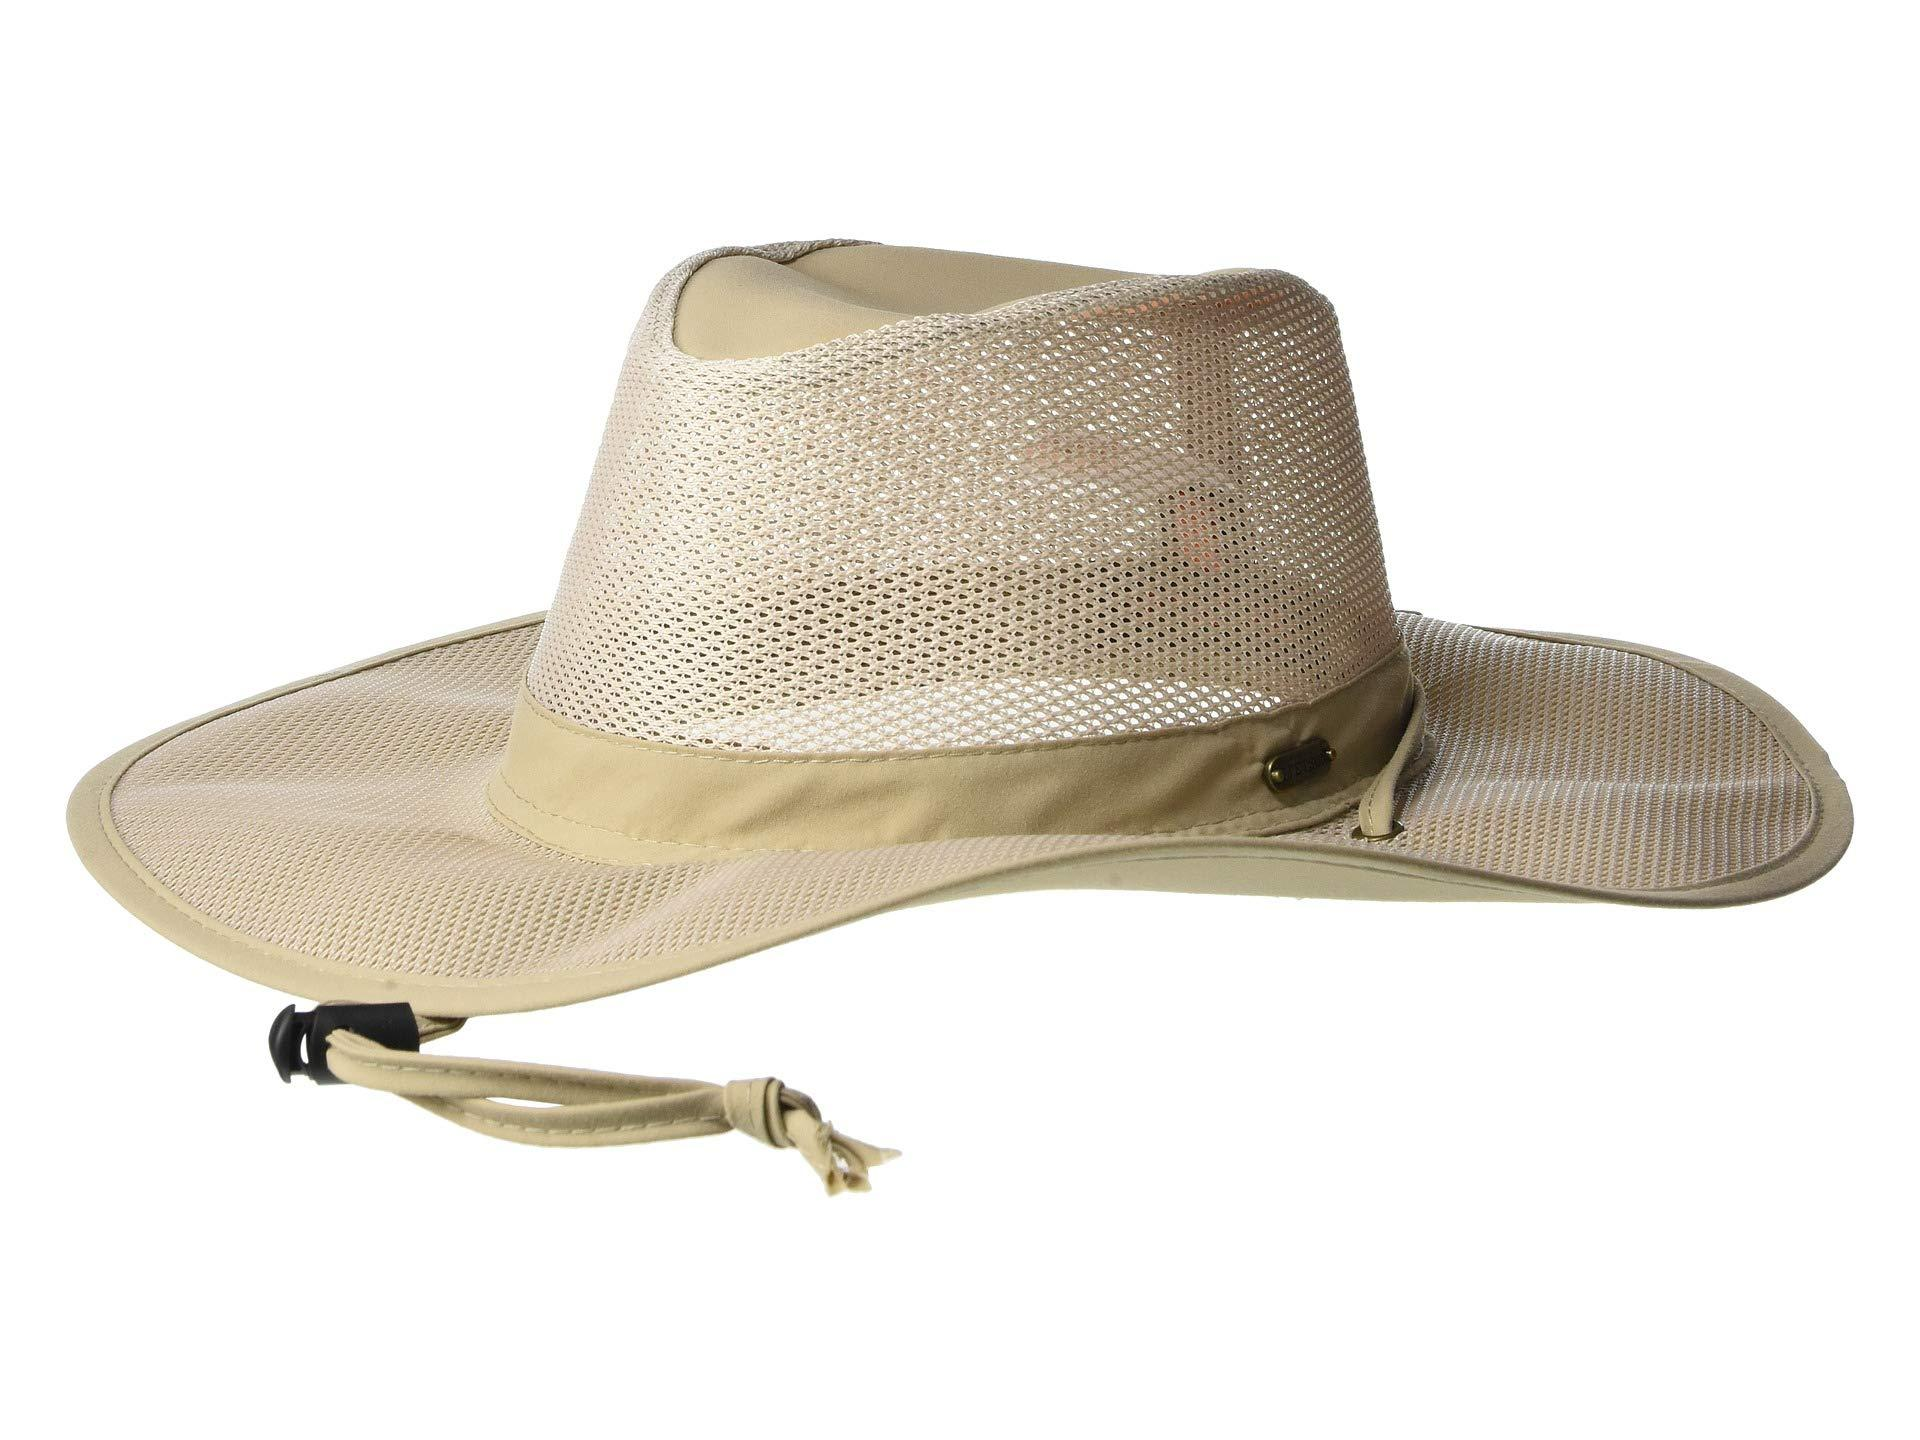 begrenzter Stil laest technology riesige Auswahl an Mesh Covered Safari With Chin Cord